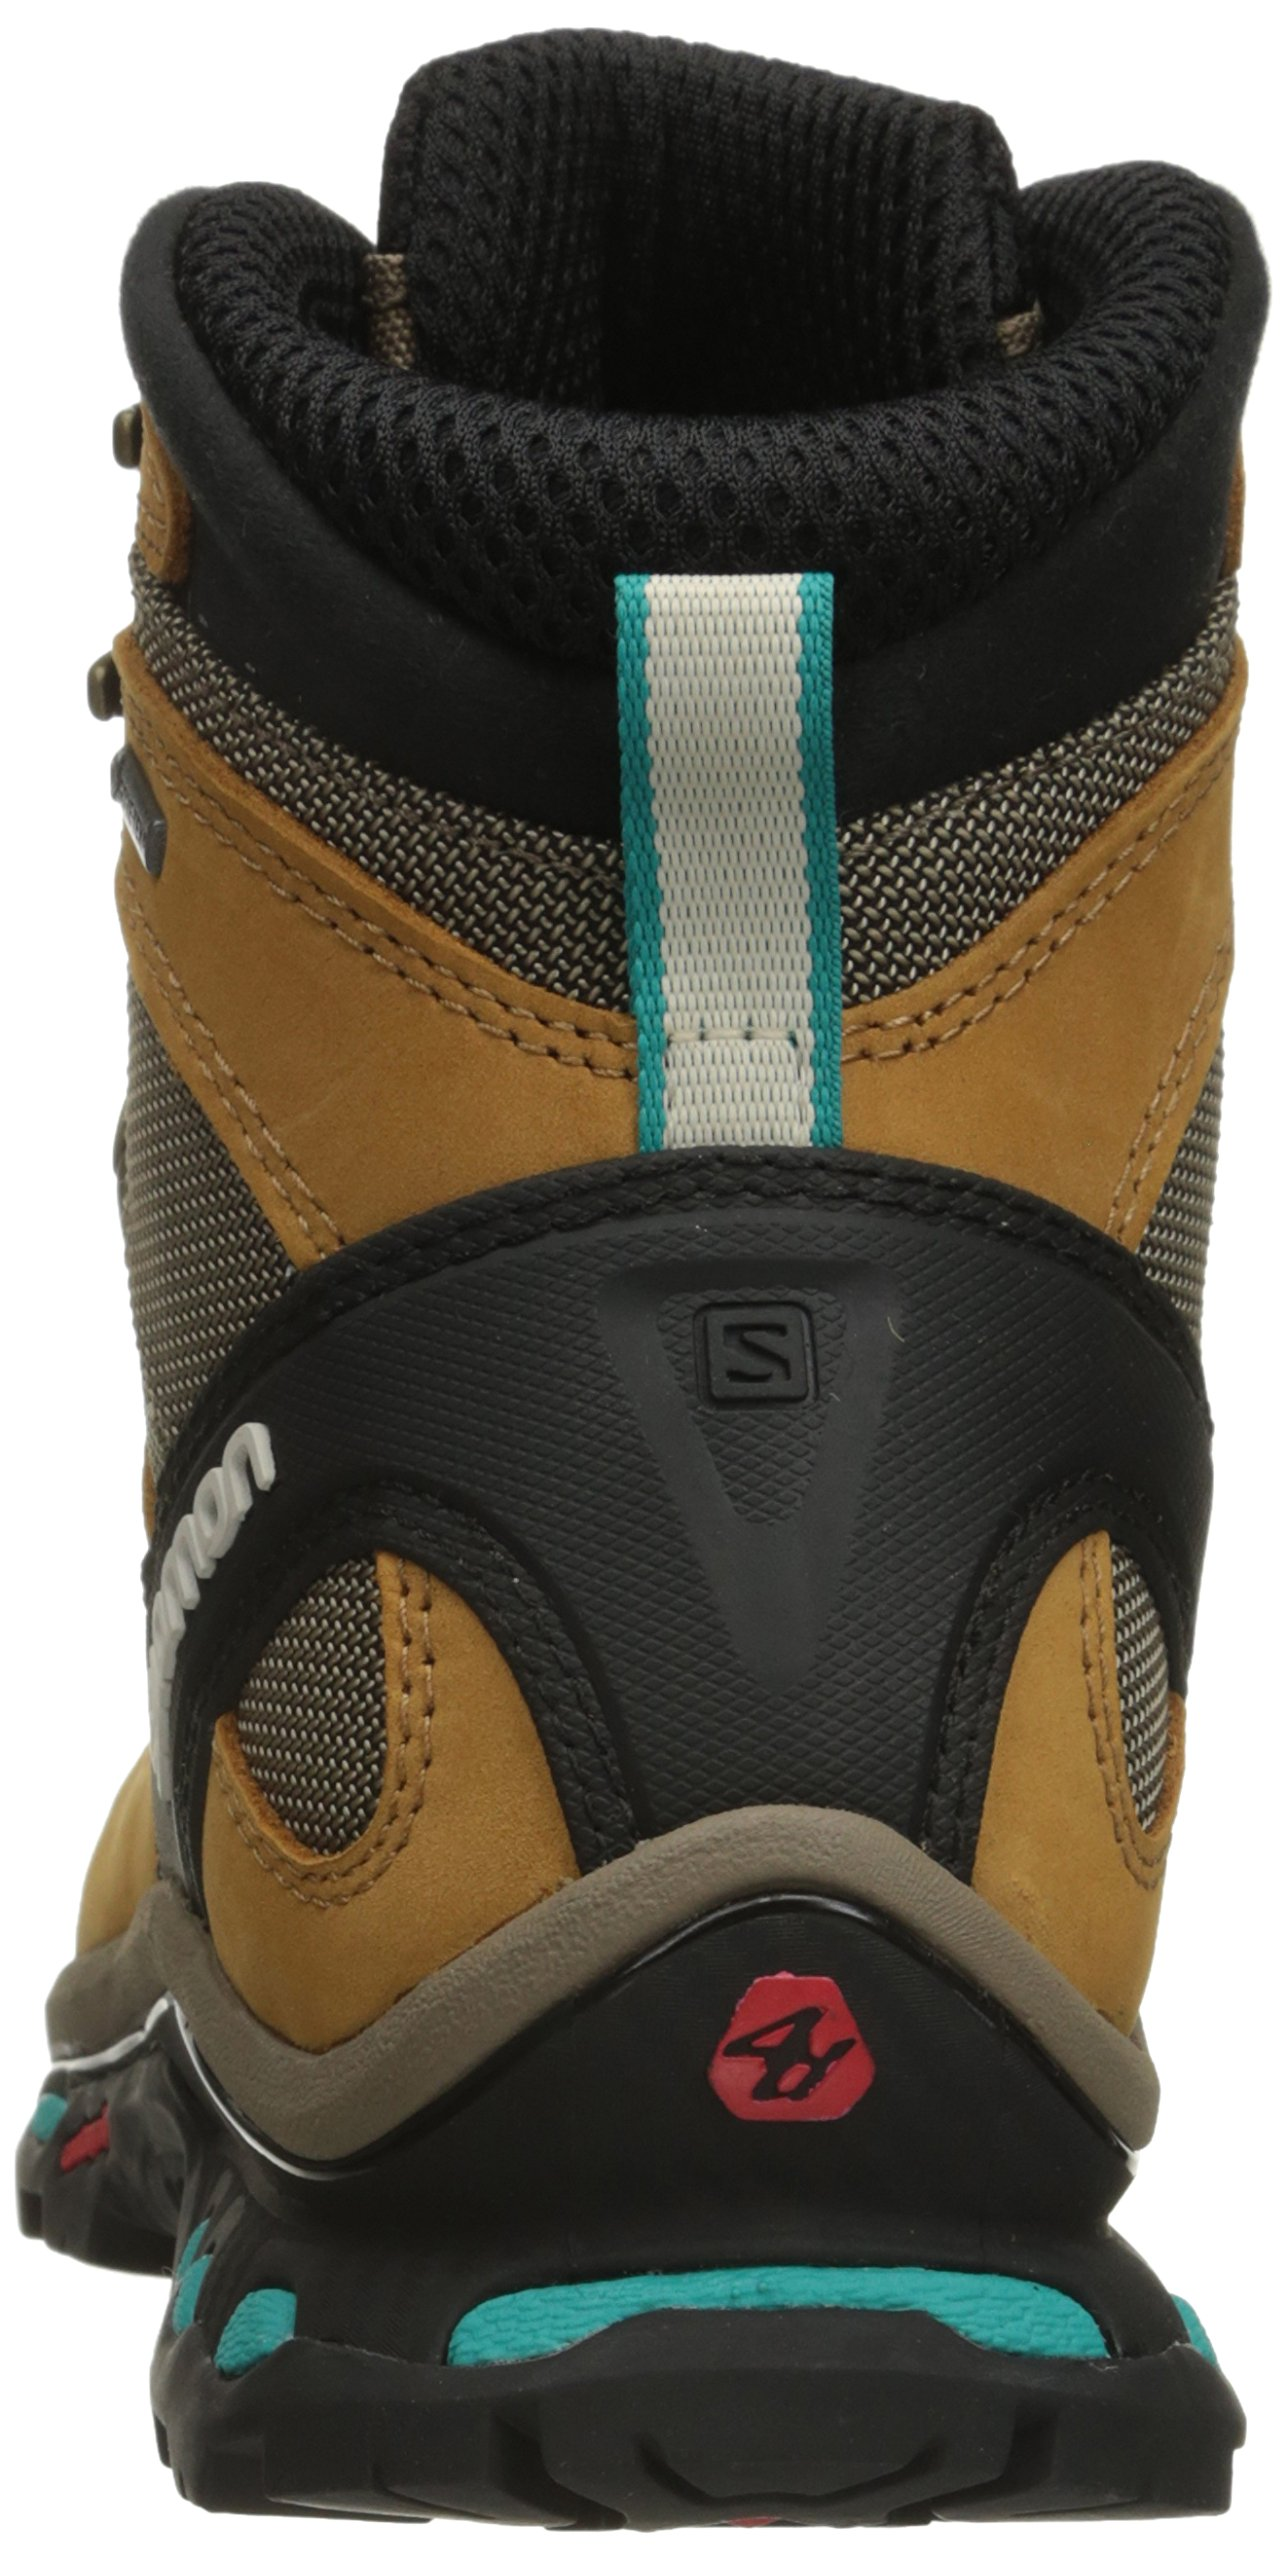 Salomon Women's Quest 4d 2 Gtx W Backpacking Boot, Shrew/Camel Gold Leather/Teal Blue Fabric, 8.5 M US by Salomon (Image #2)